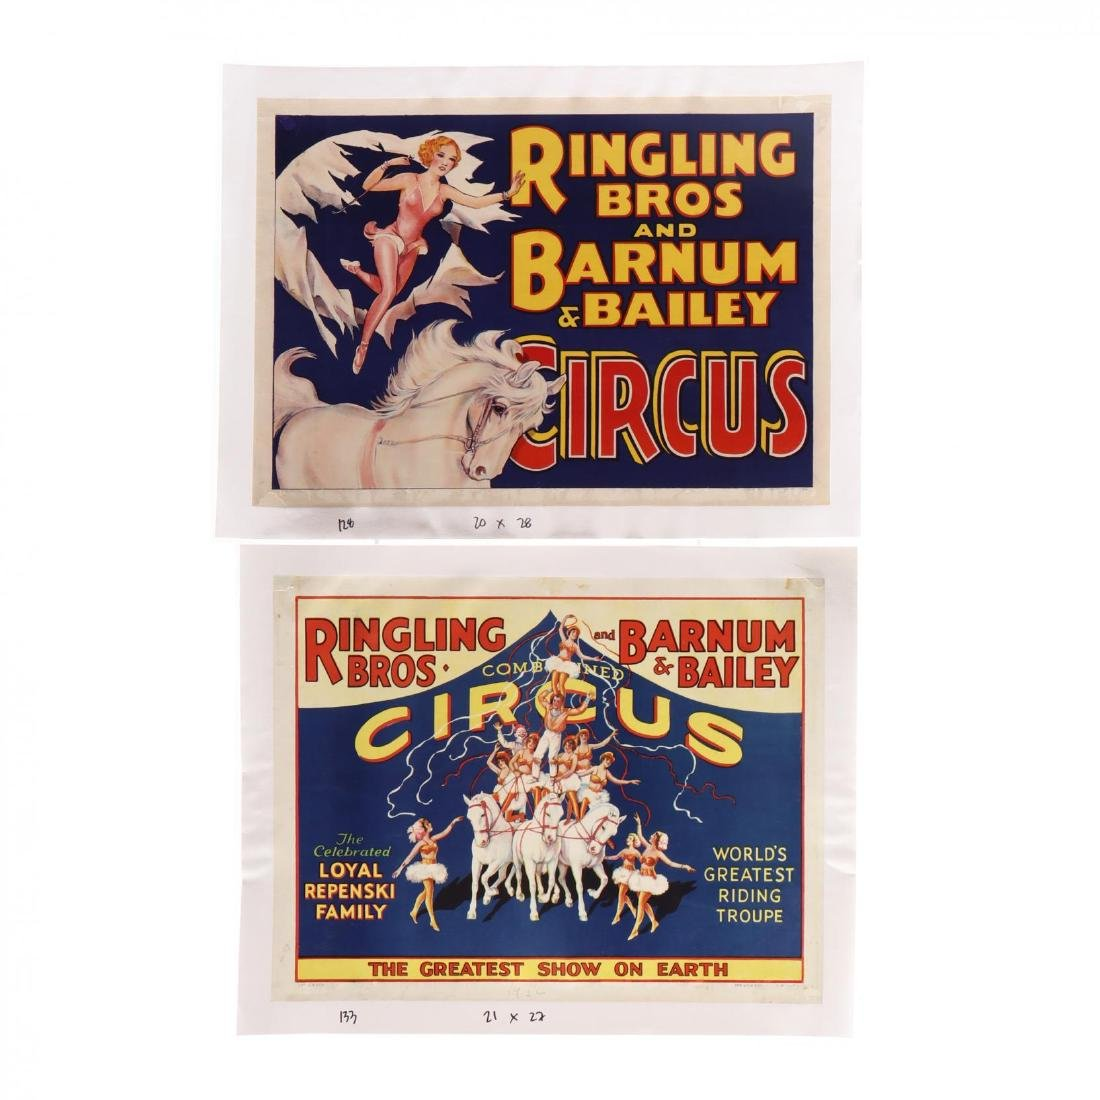 Two Ringling Bros and Barnum & Bailey Circus Posters,